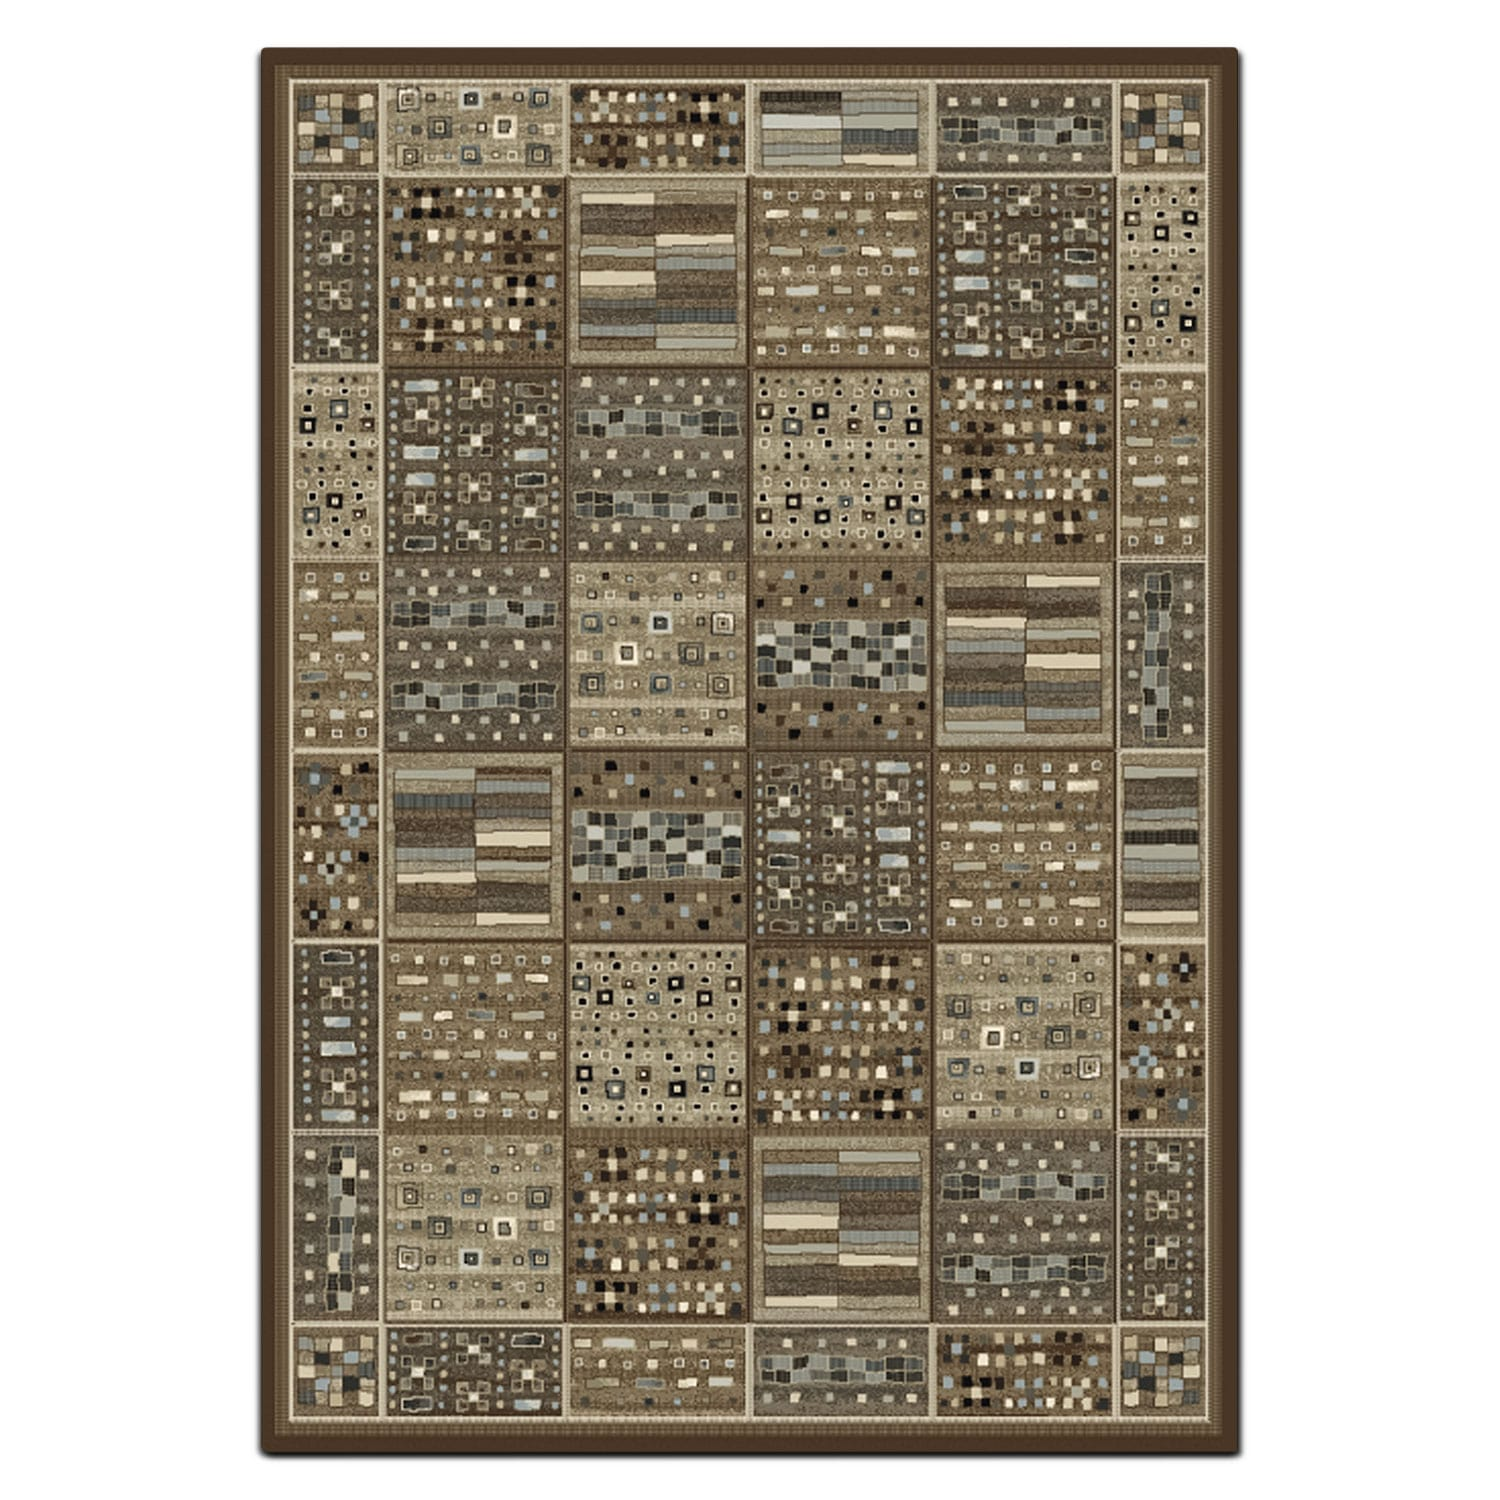 Rugs - Sonoma 8' x 10' Area Rug - Gray and Ivory